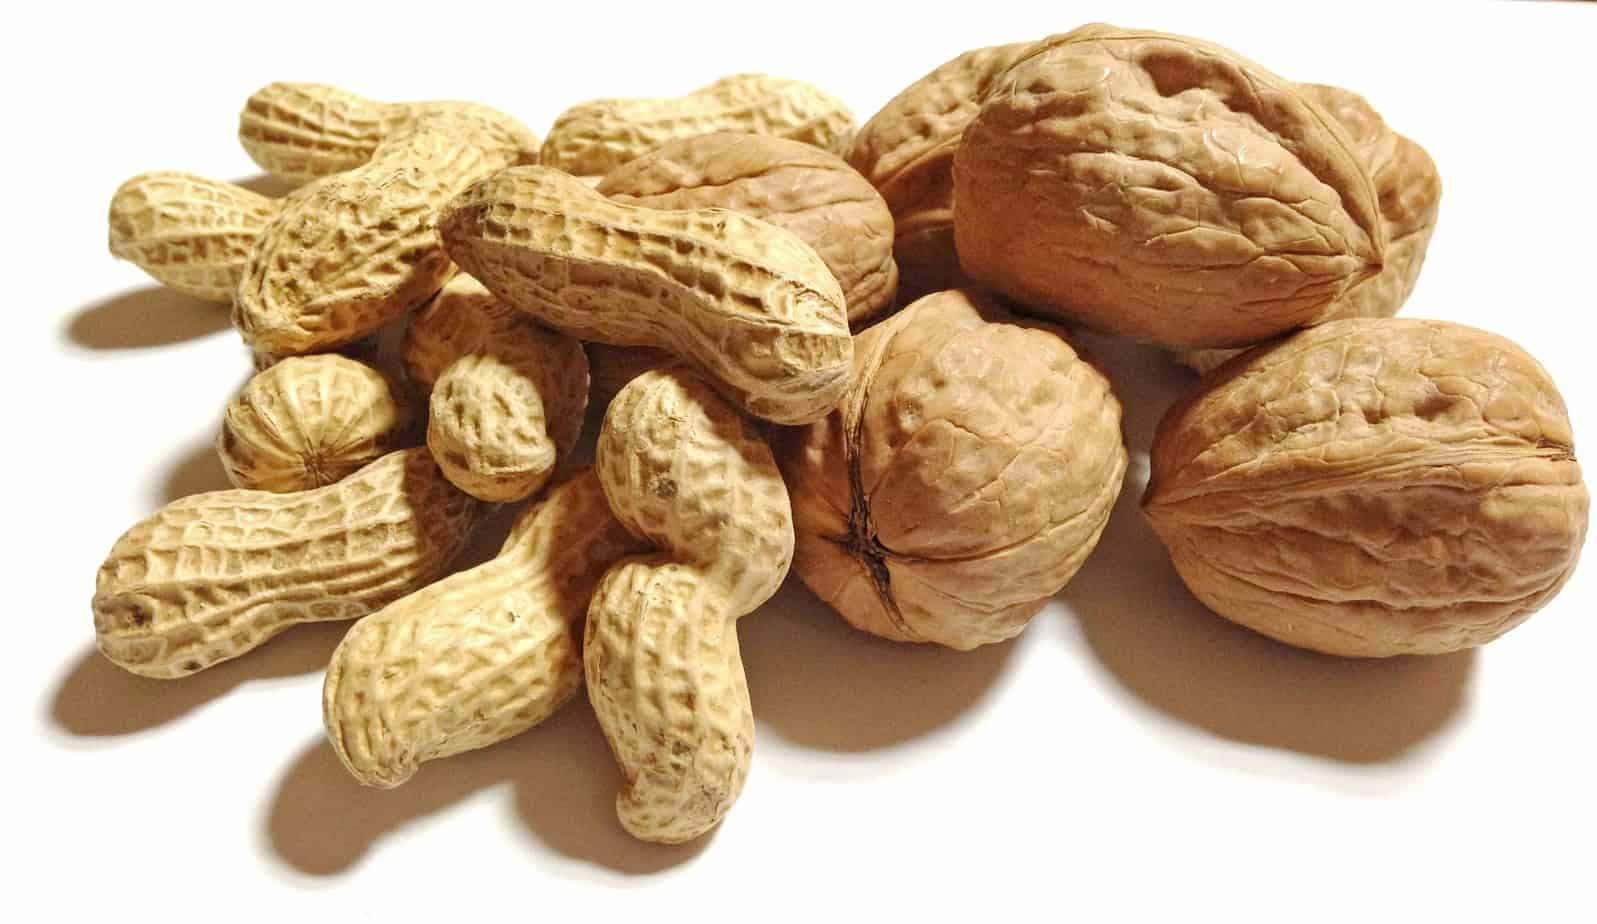 peanuts and walnuts are allowed on the low-FODMAP eating plan